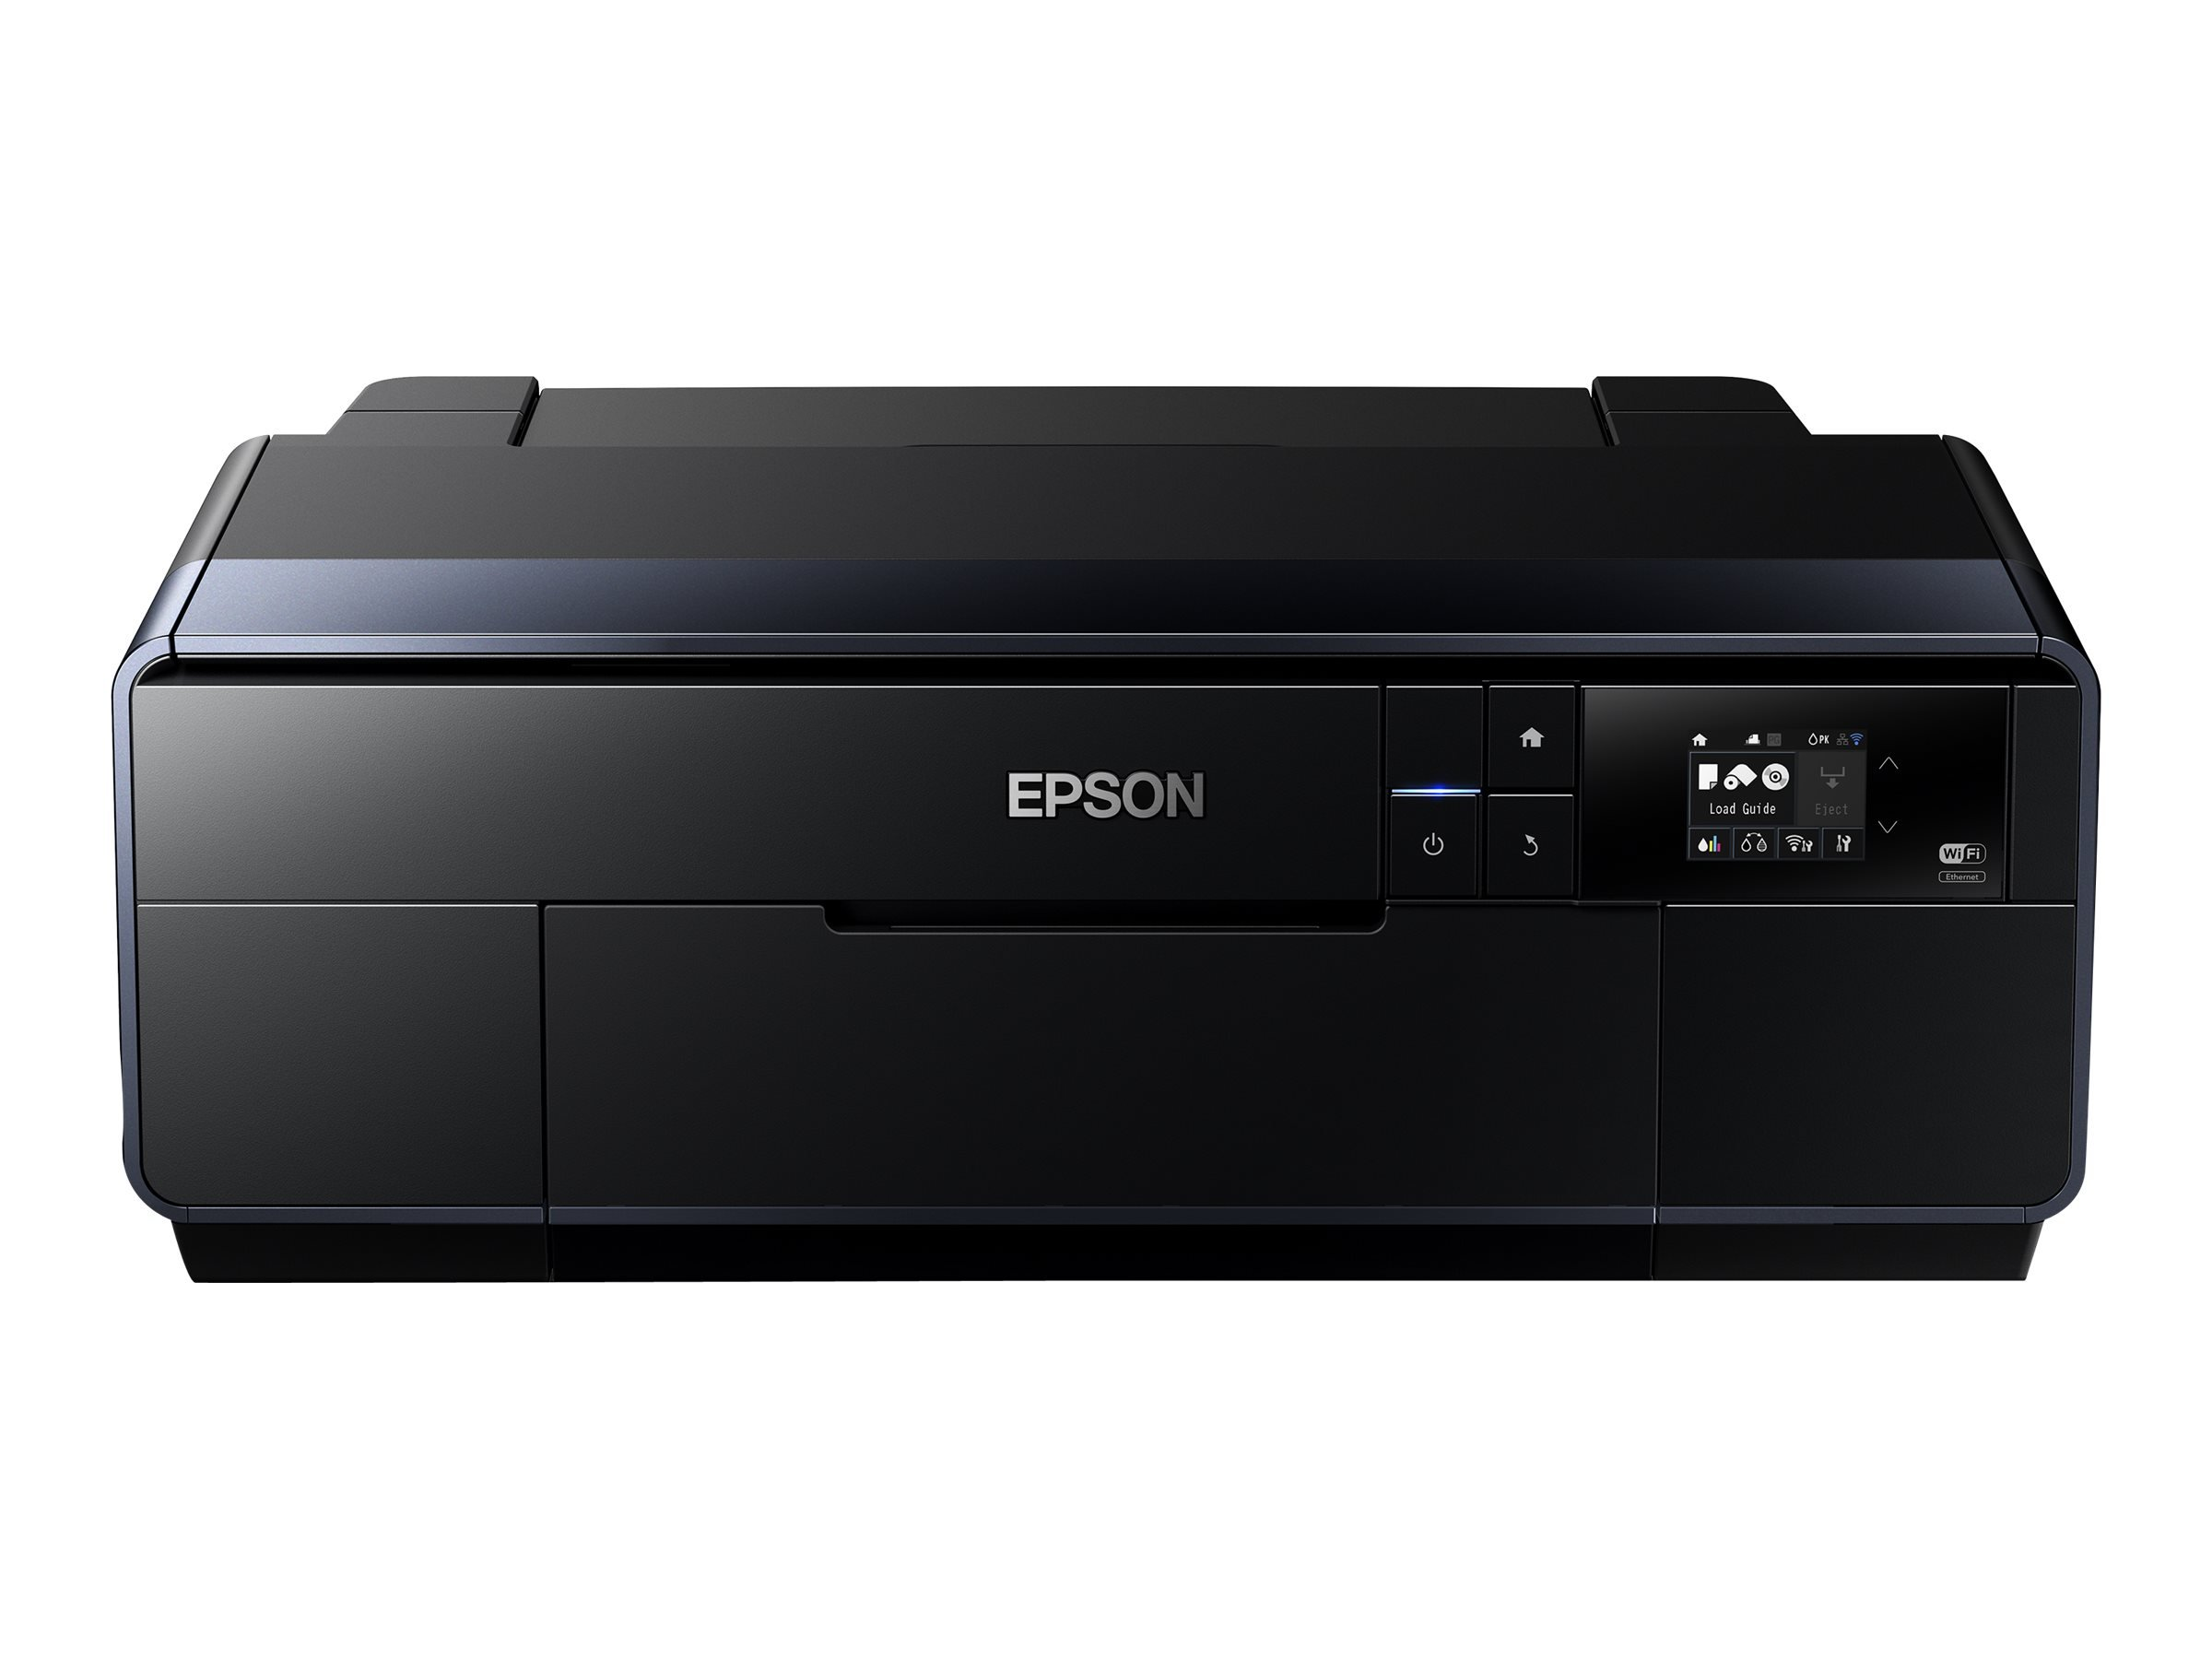 Epson SureColor P600 Inkjet Printer by Epson